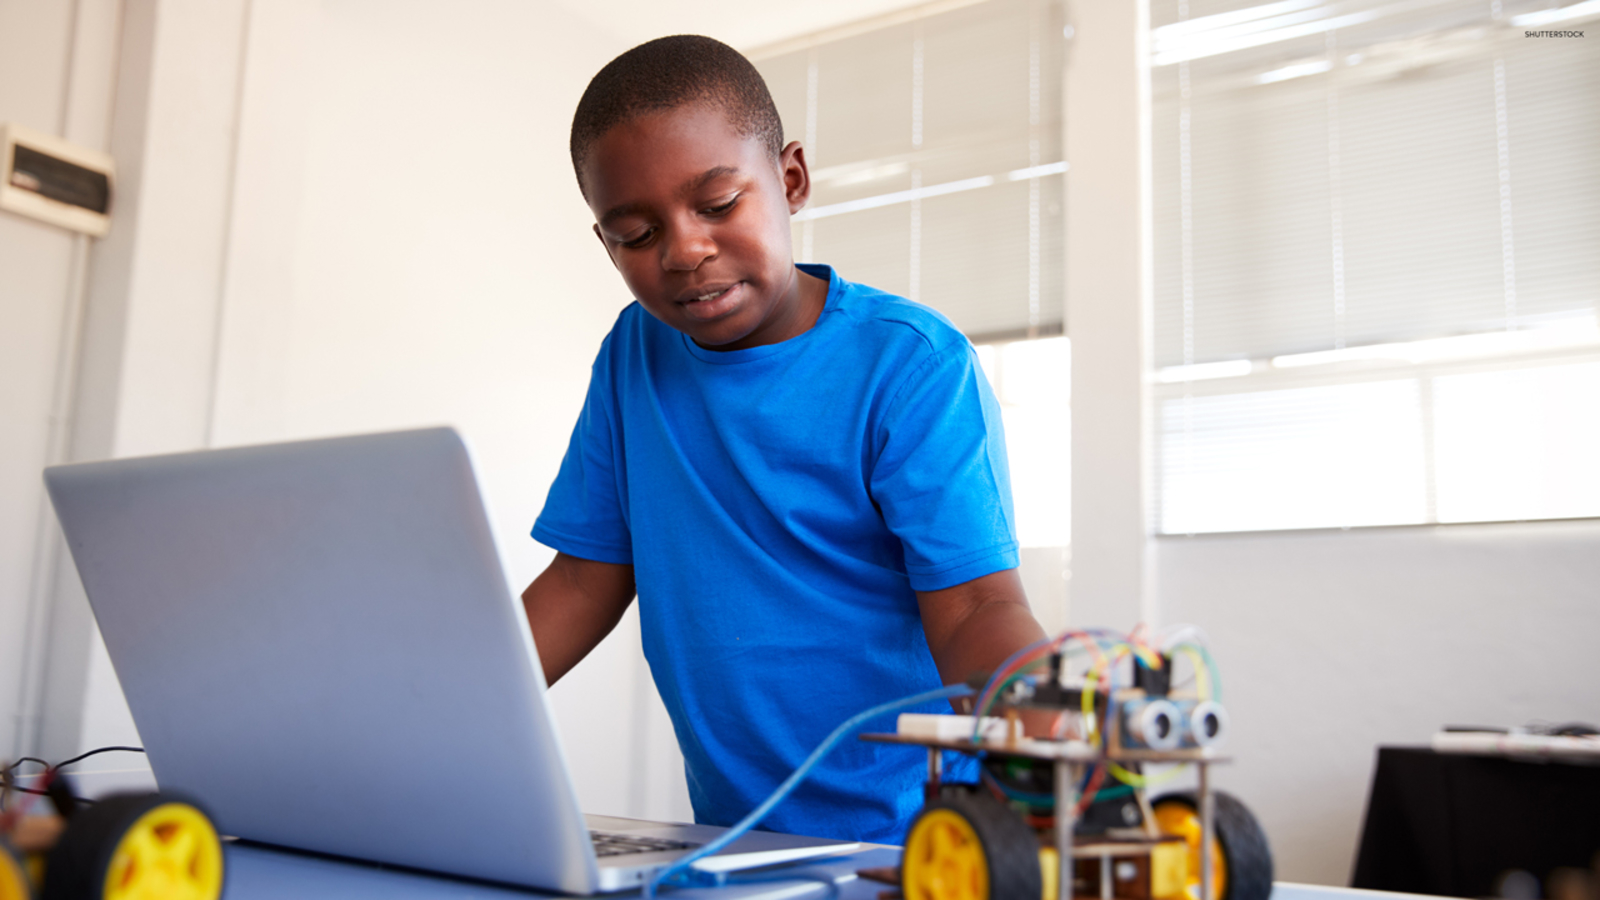 """Microsoft's """"Black Boy Joy"""" Coding Camp Hopes to Increase Diversity and Representation Within Tech Industry"""